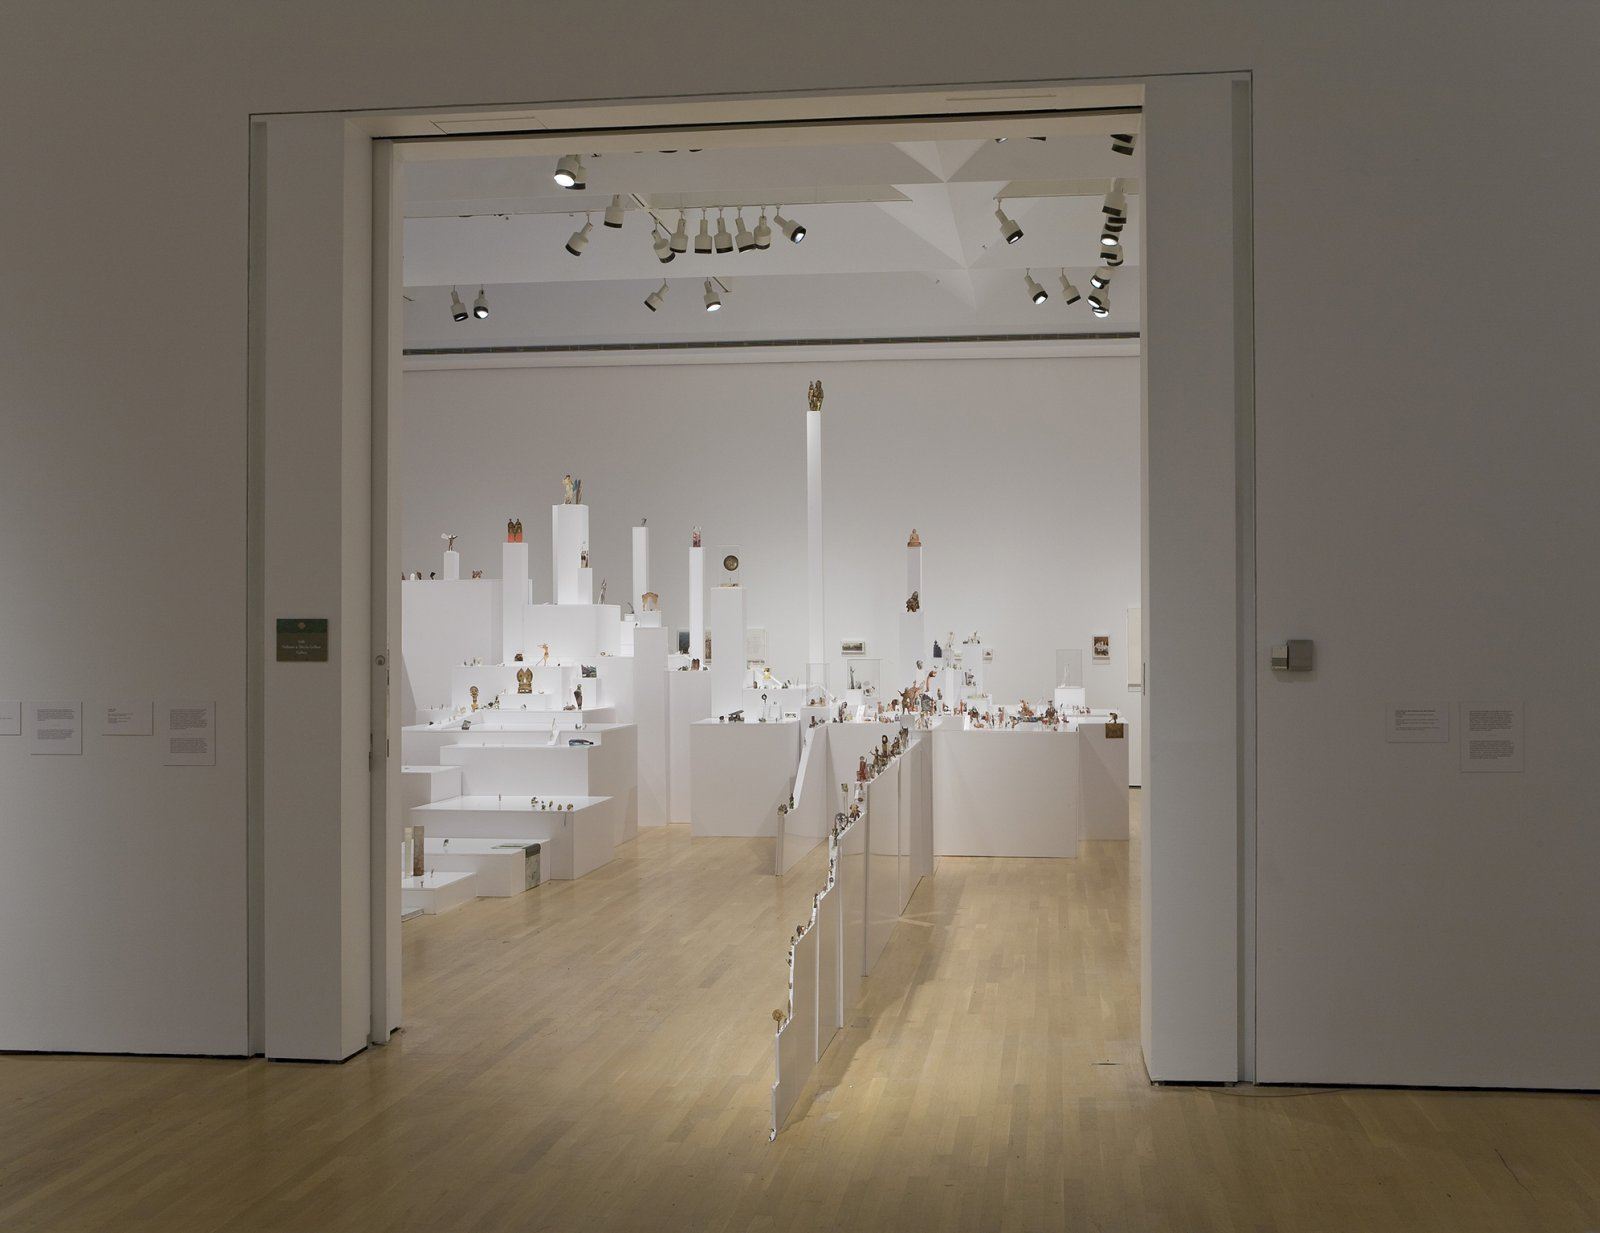 Geoffrey Farmer, The Last Two Million Years, 2007, foamcore plinths, perspex frames and cutouts from selected pages of the history book The Last Two Million Years, dimensions variable. Installation view, Musée d'art contemporain de Montréal, 2008 by Geoffrey Farmer